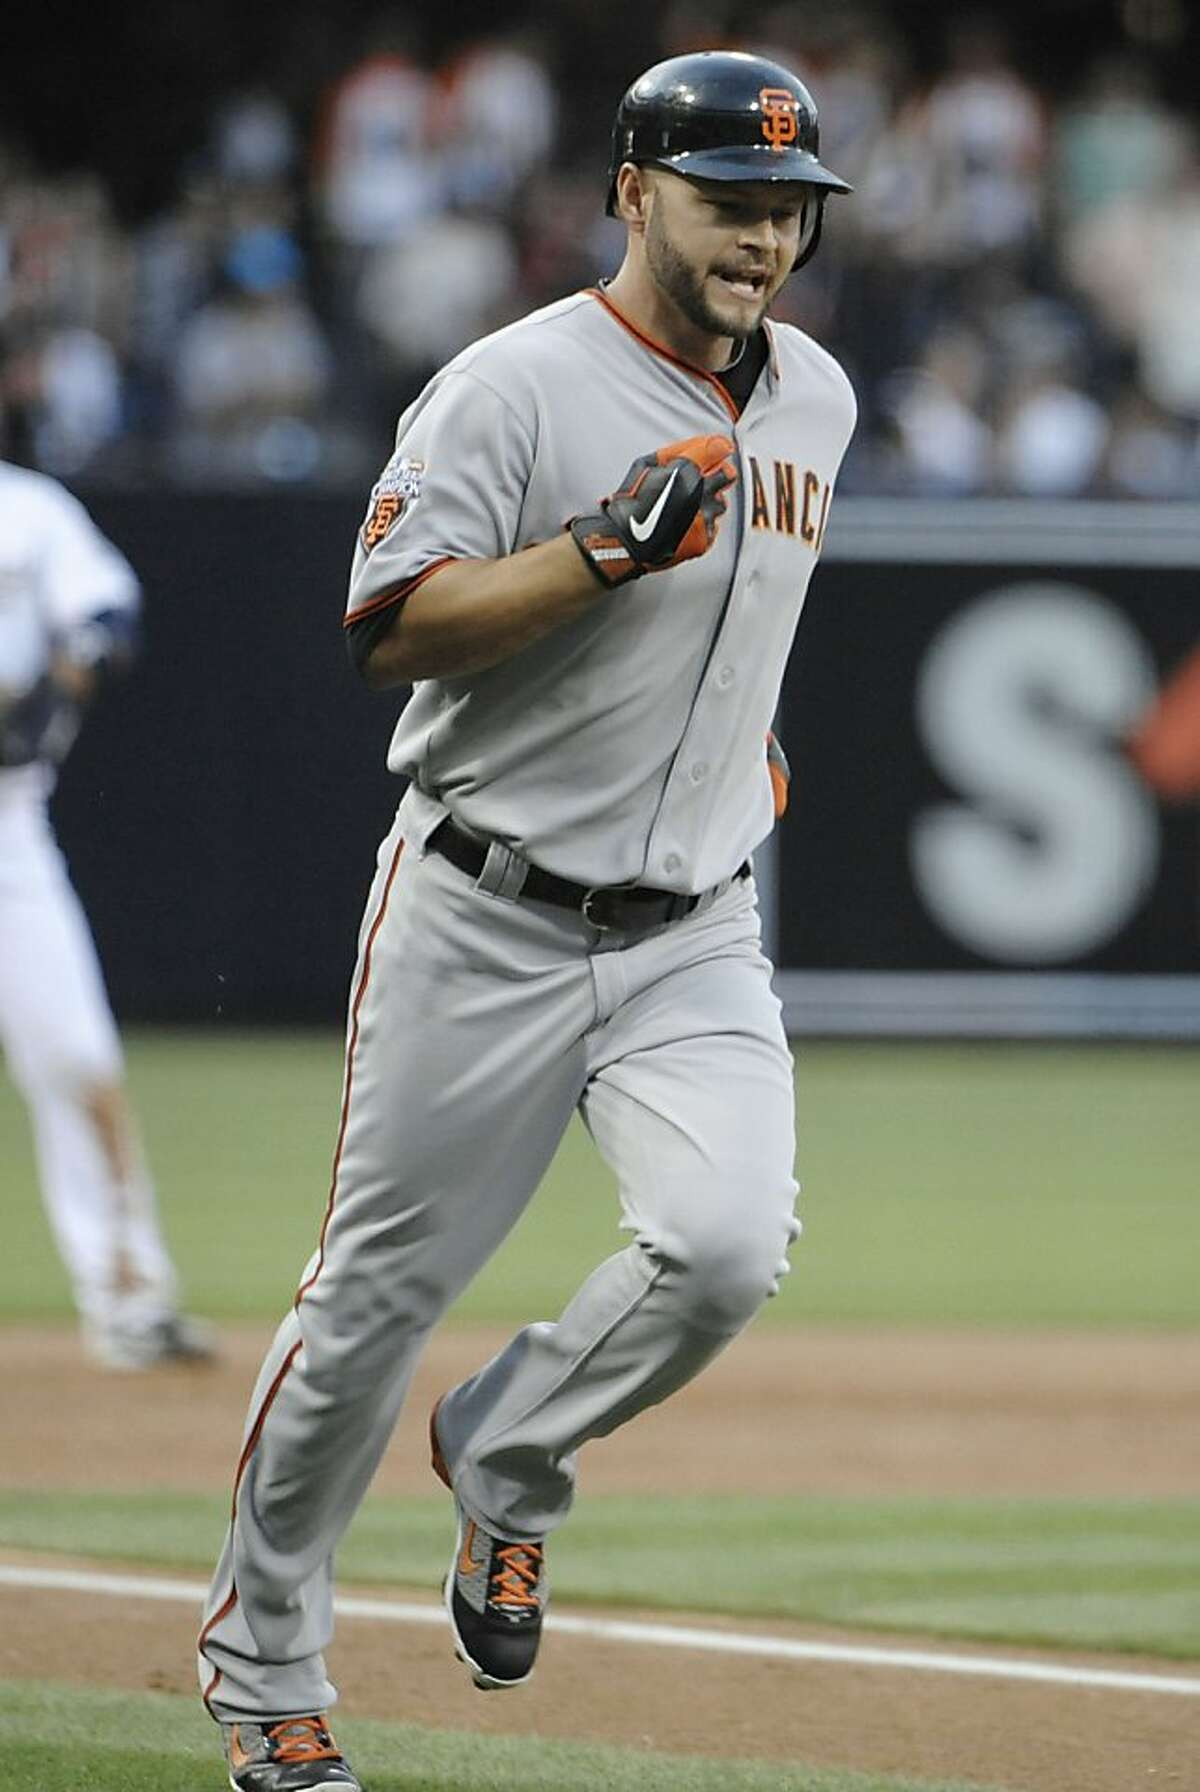 SAN DIEGO, CA - JULY 15: Cody Ross #13 of the San Francisco Giants rounds the bases after hitting a solo home run during the second inning of a baseball game against the San Diego Padres at Petco Park on July 15, 2011 in San Diego, California. (Photo by Denis Poroy/Getty Images) Ran on: 07-16-2011 Cody Ross trots around the bases after a solo homer that put the Giants up 2-0.